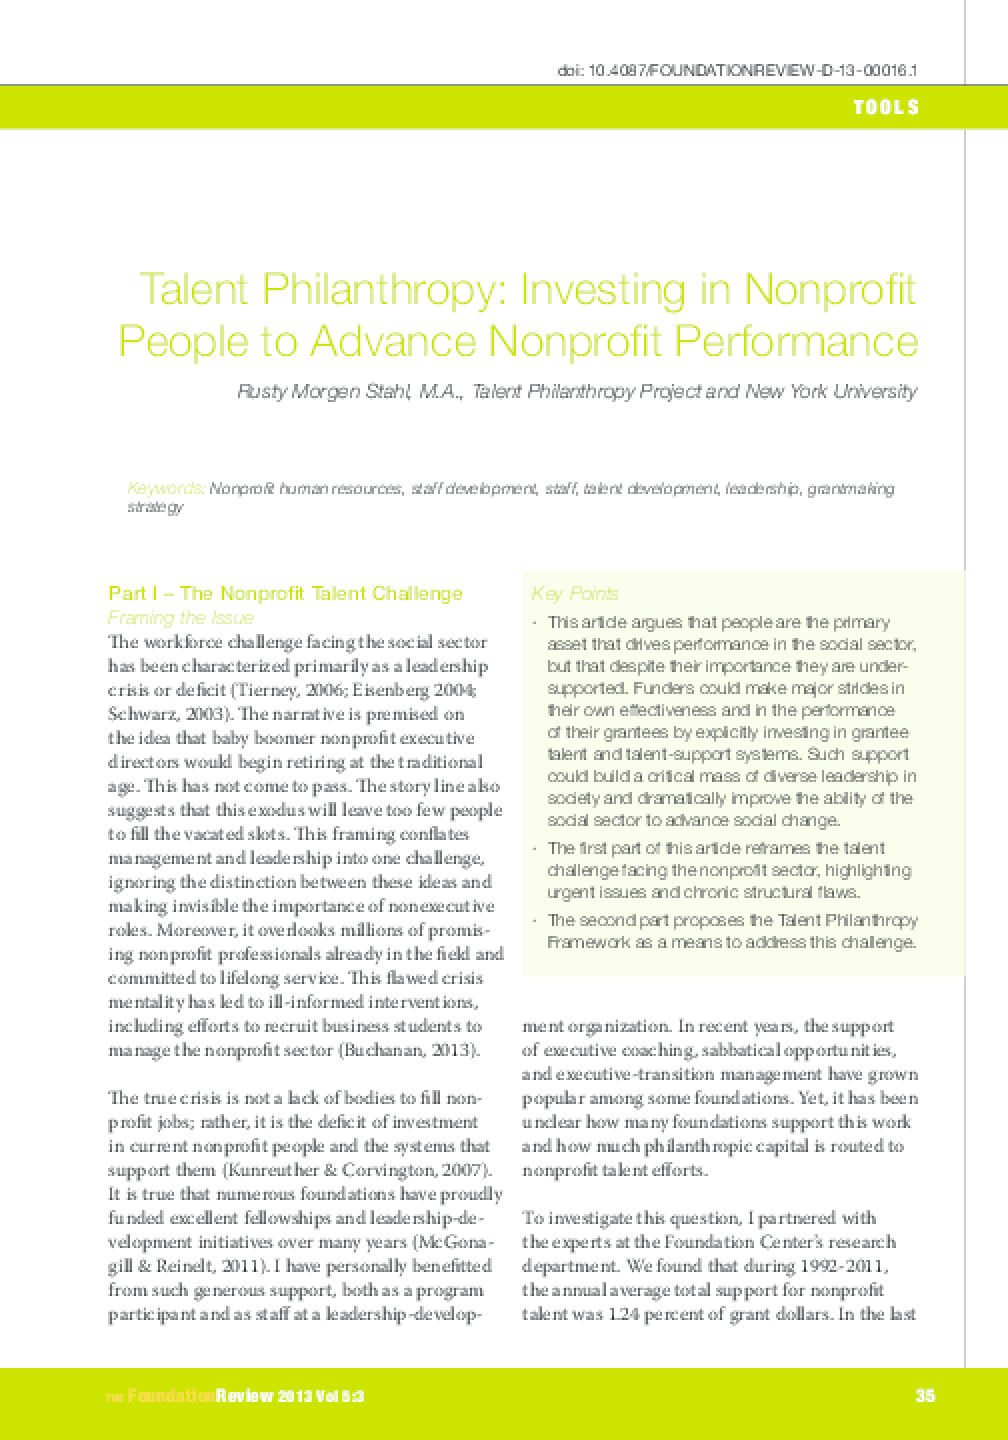 Talent Philanthropy: Investing in Nonprofit People to Advance Nonprofit Performance